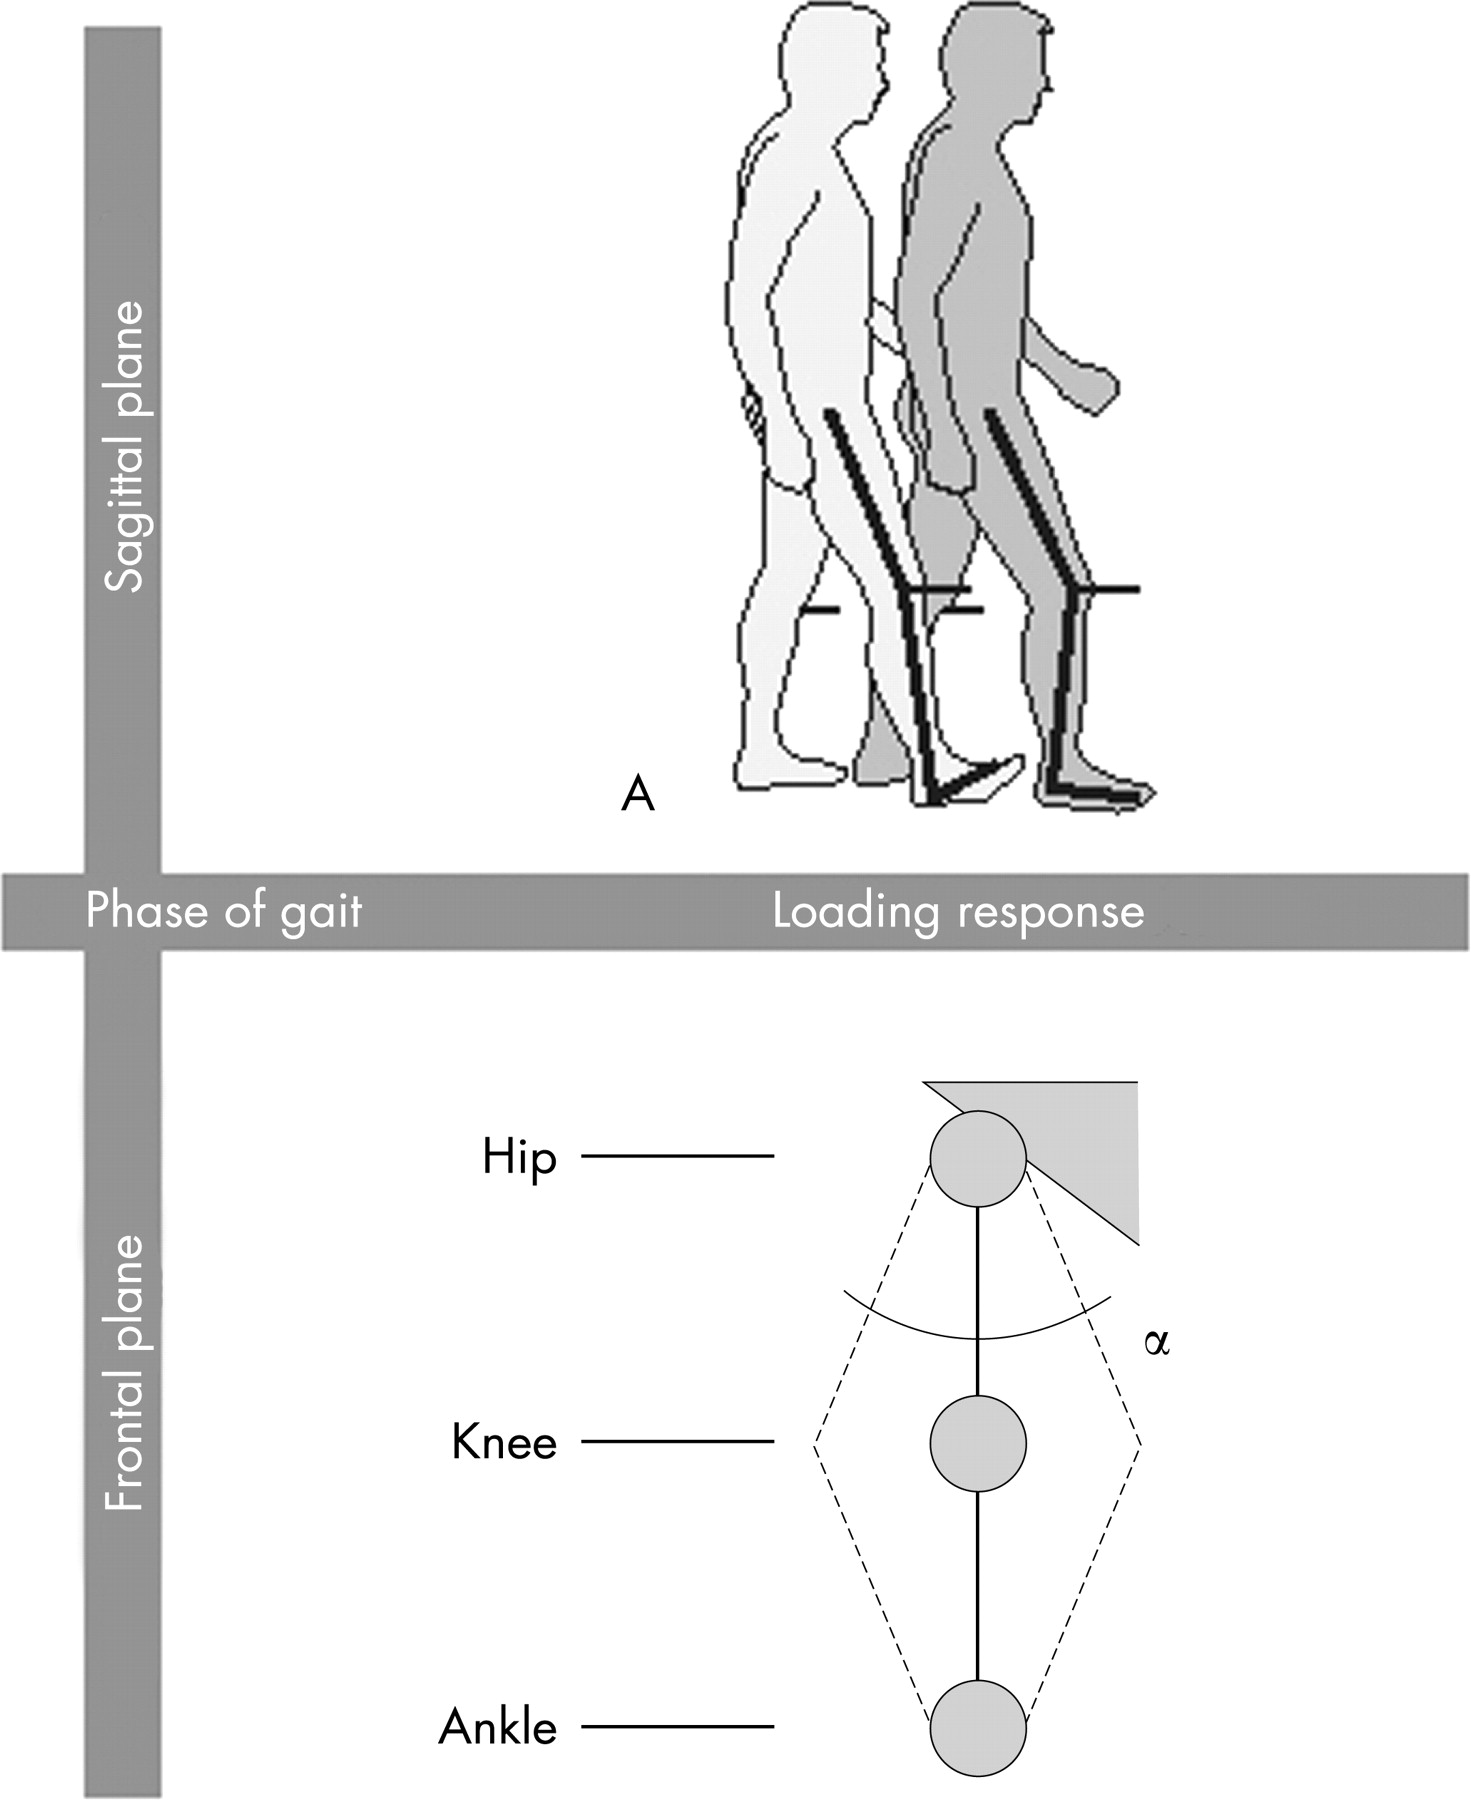 Varusvalgus Motion And Functional Ability In Patients With Knee